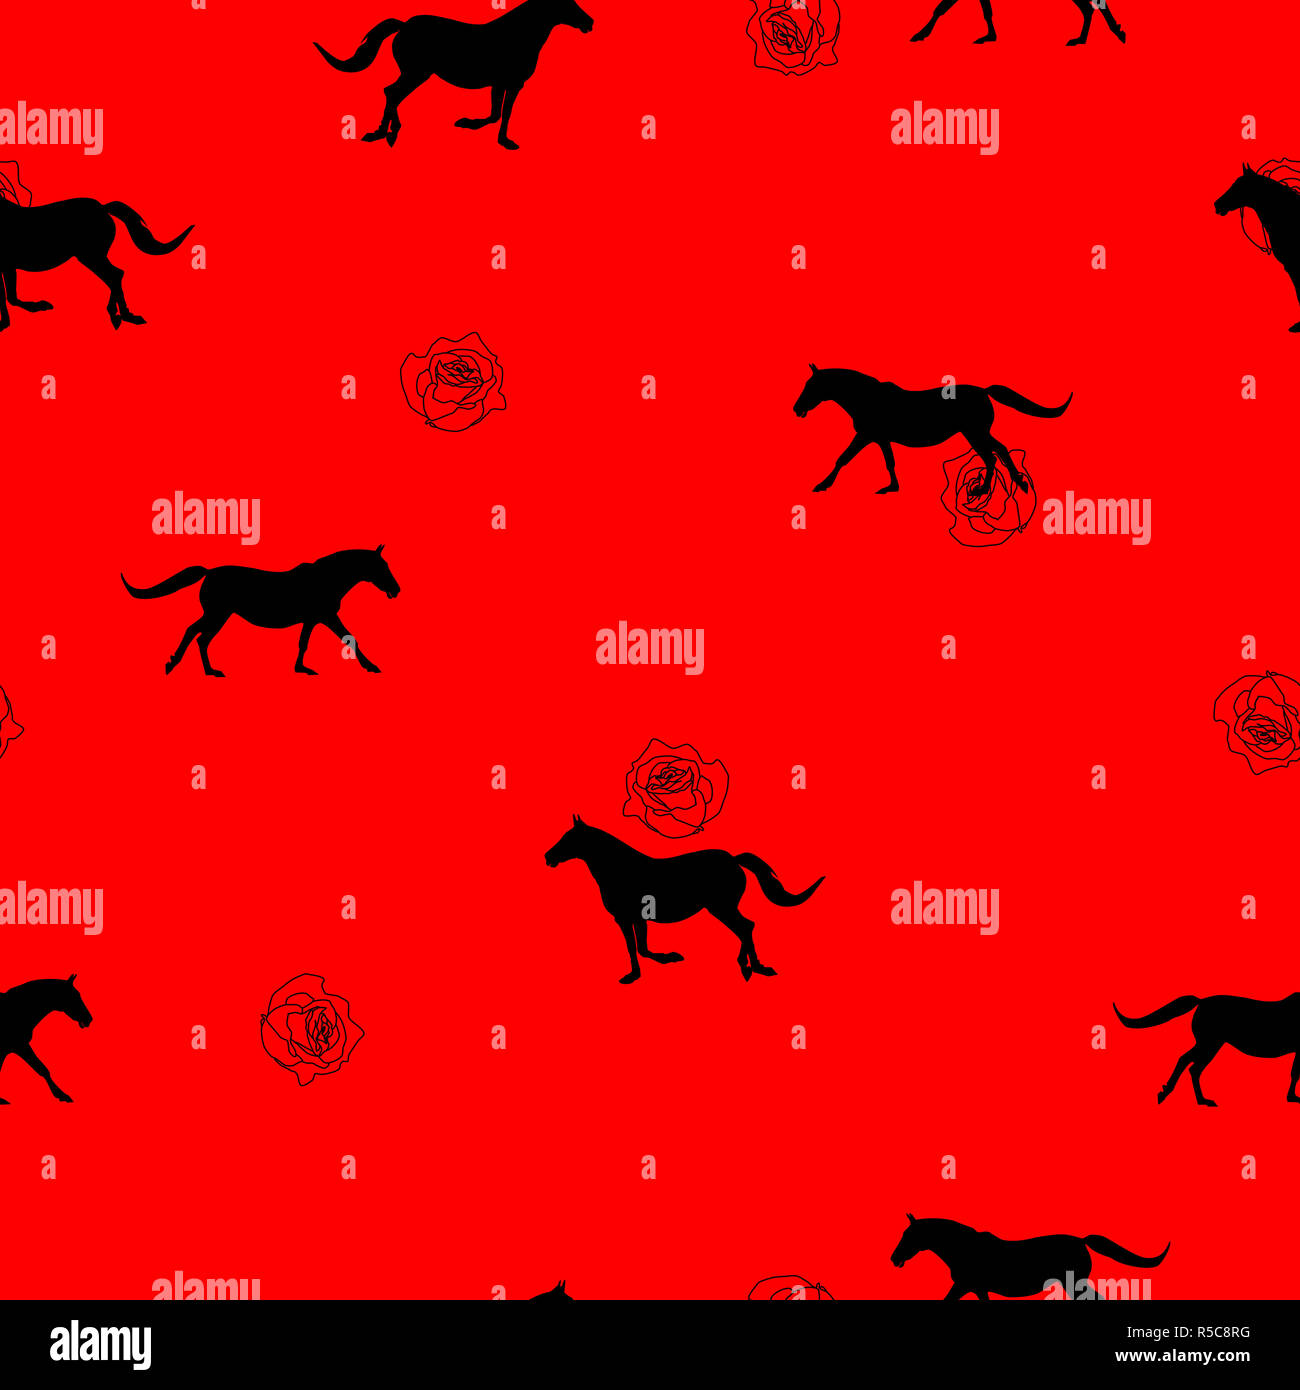 Seamless Wild Animals Pattern Black Horses Silhouette And Small Red Roses On Red Background Modern Pretty Feminine Floral Print Illustration Horses Stock Photo Alamy